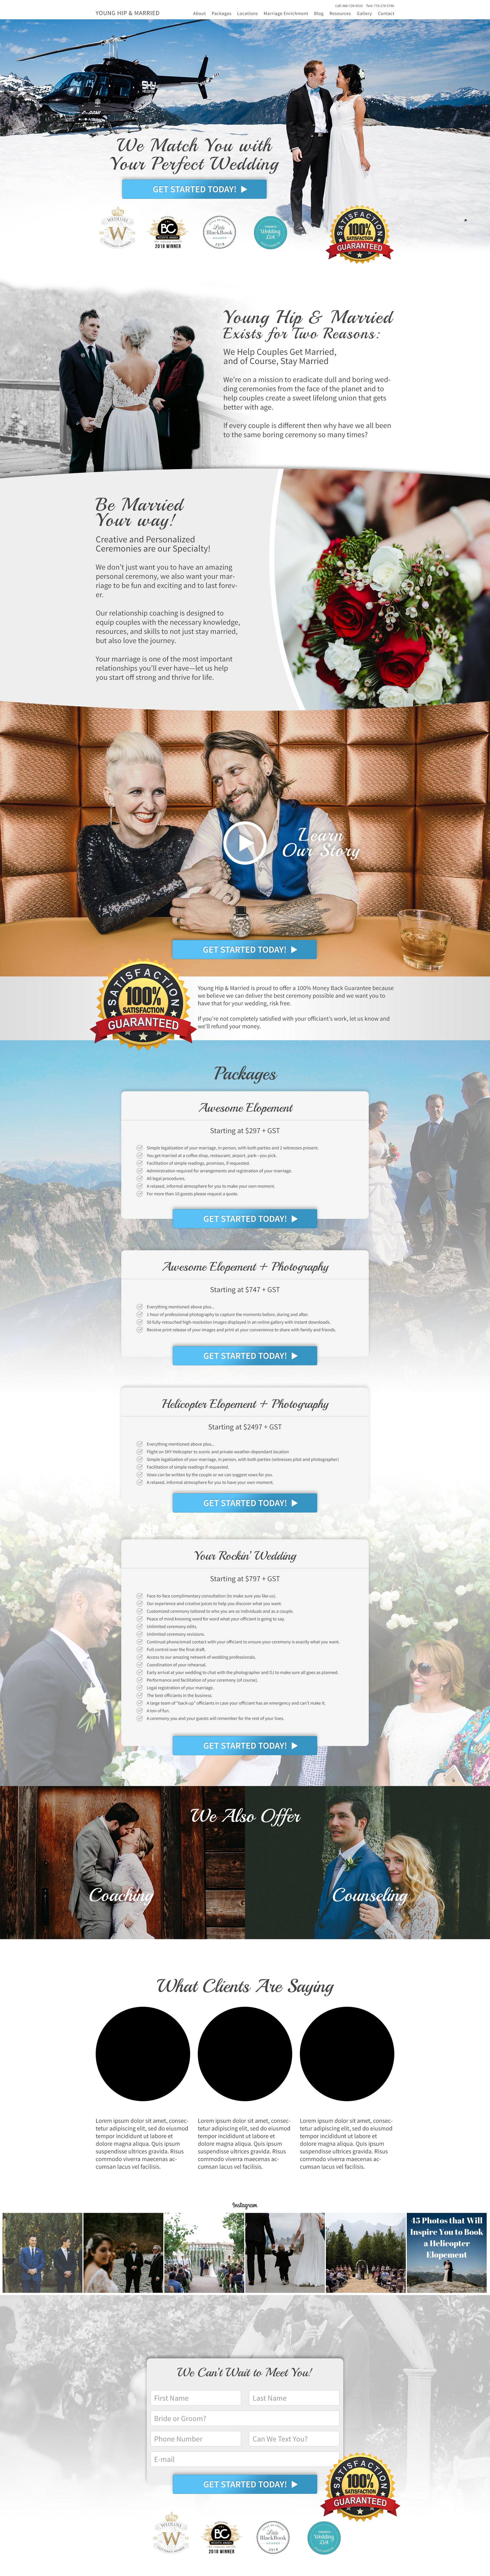 Young Hip & Married Landing Page by Jon Craig Design